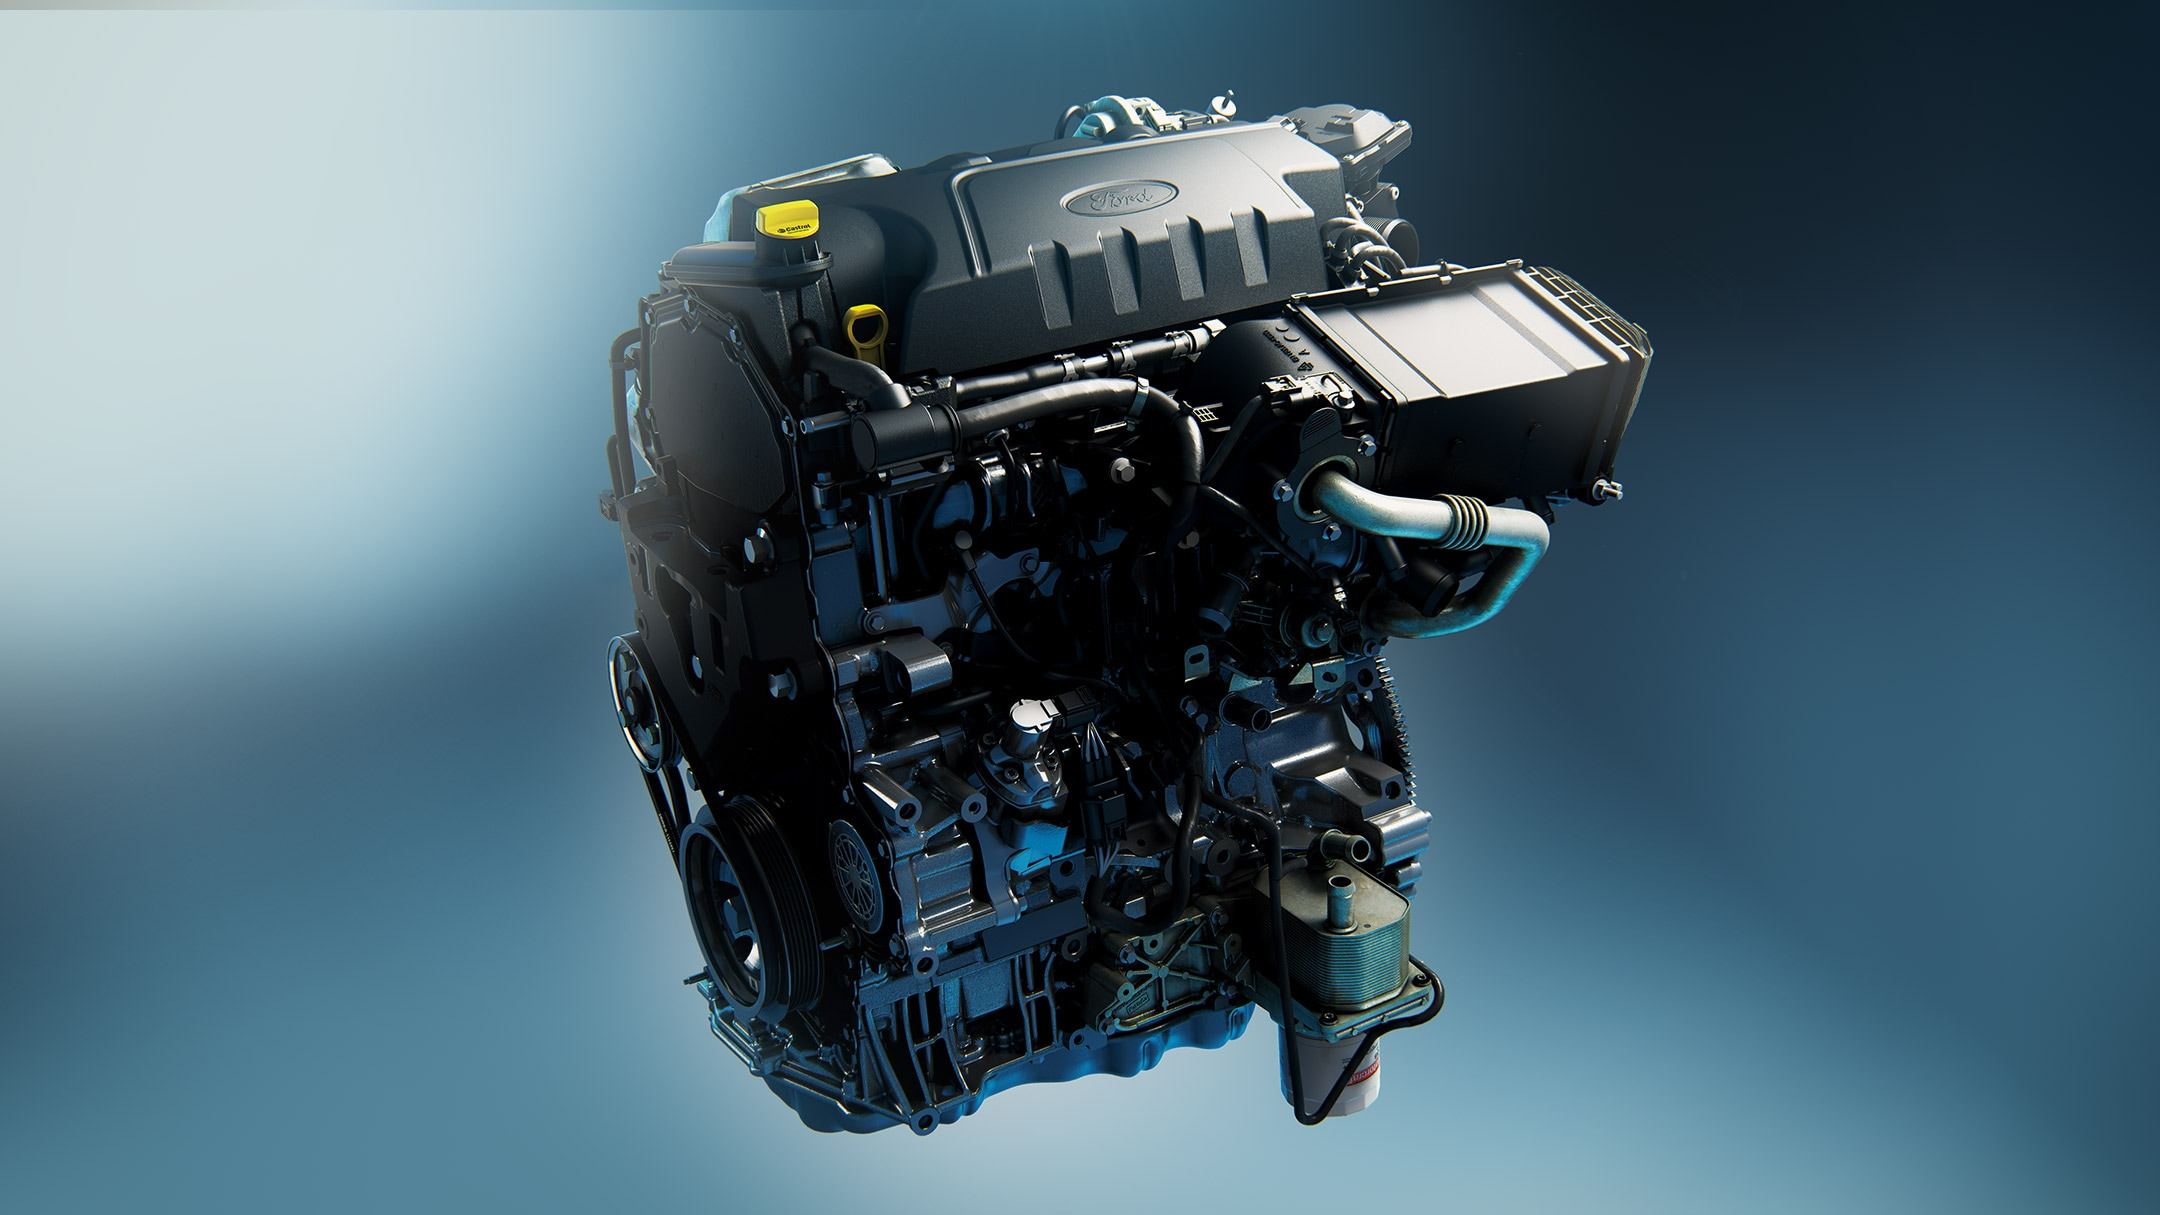 2.0L Ford EcoBlue engine